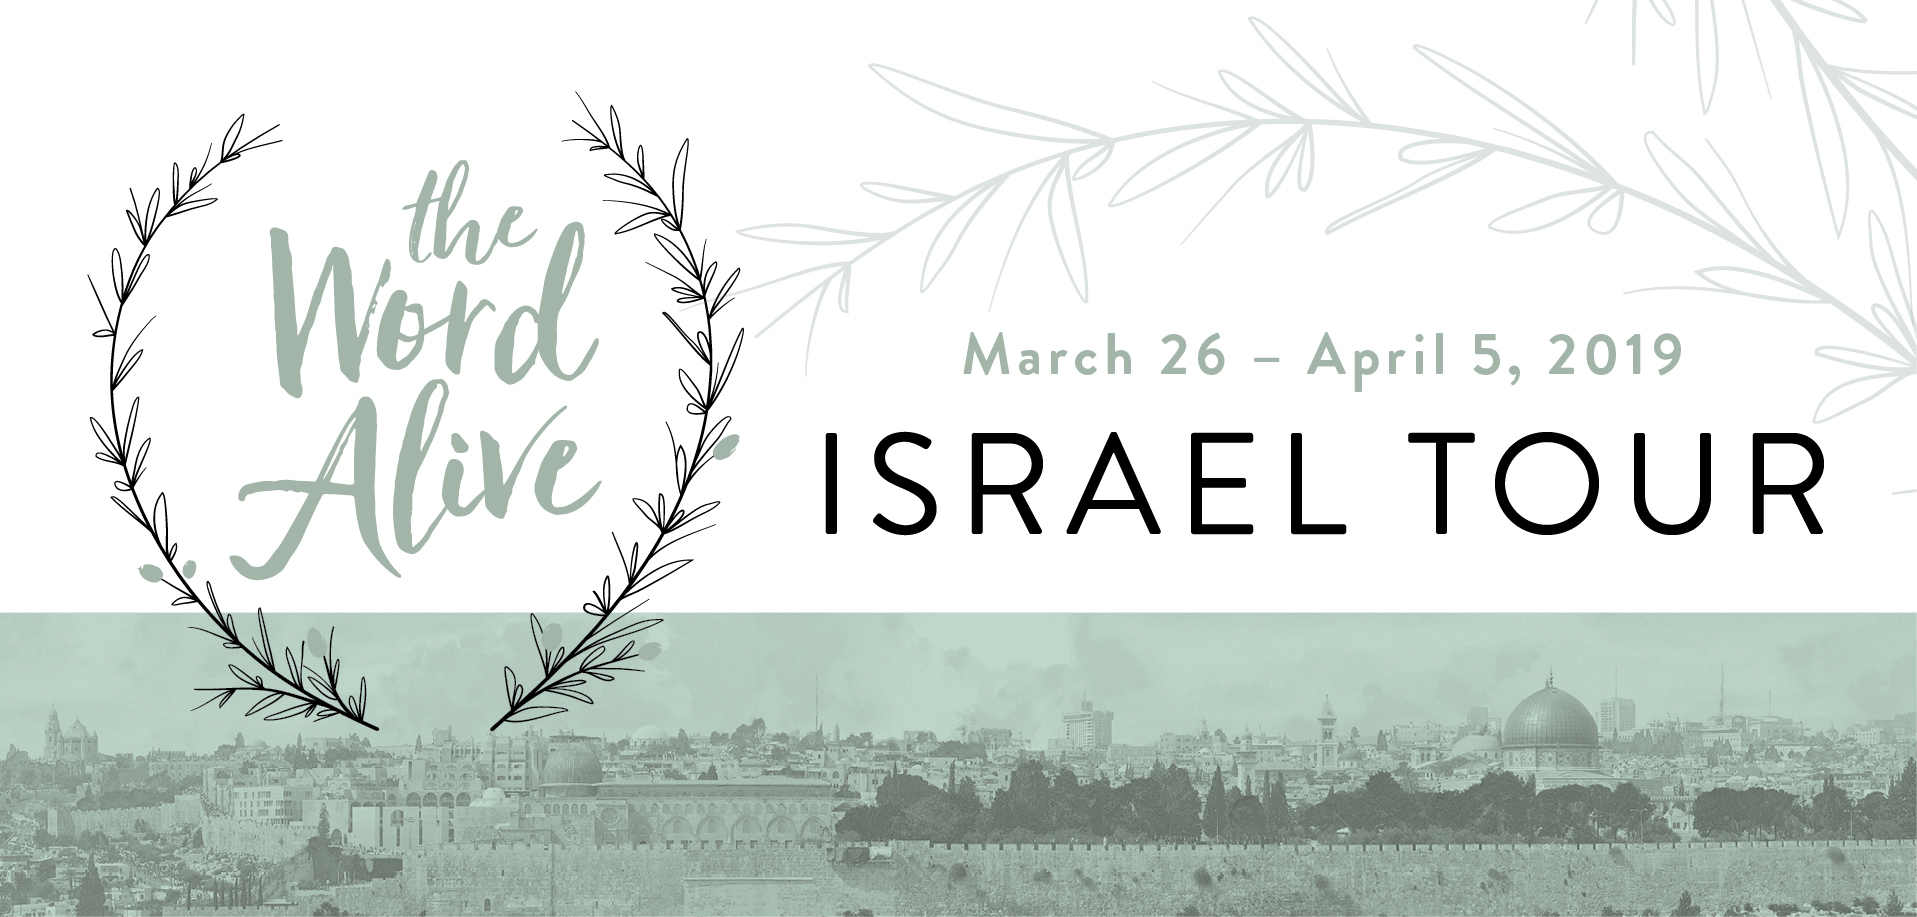 Take a Christian TourWX with Lifeway Israel Tour - Christian Tour to Israel - March 26-April 5, 2019